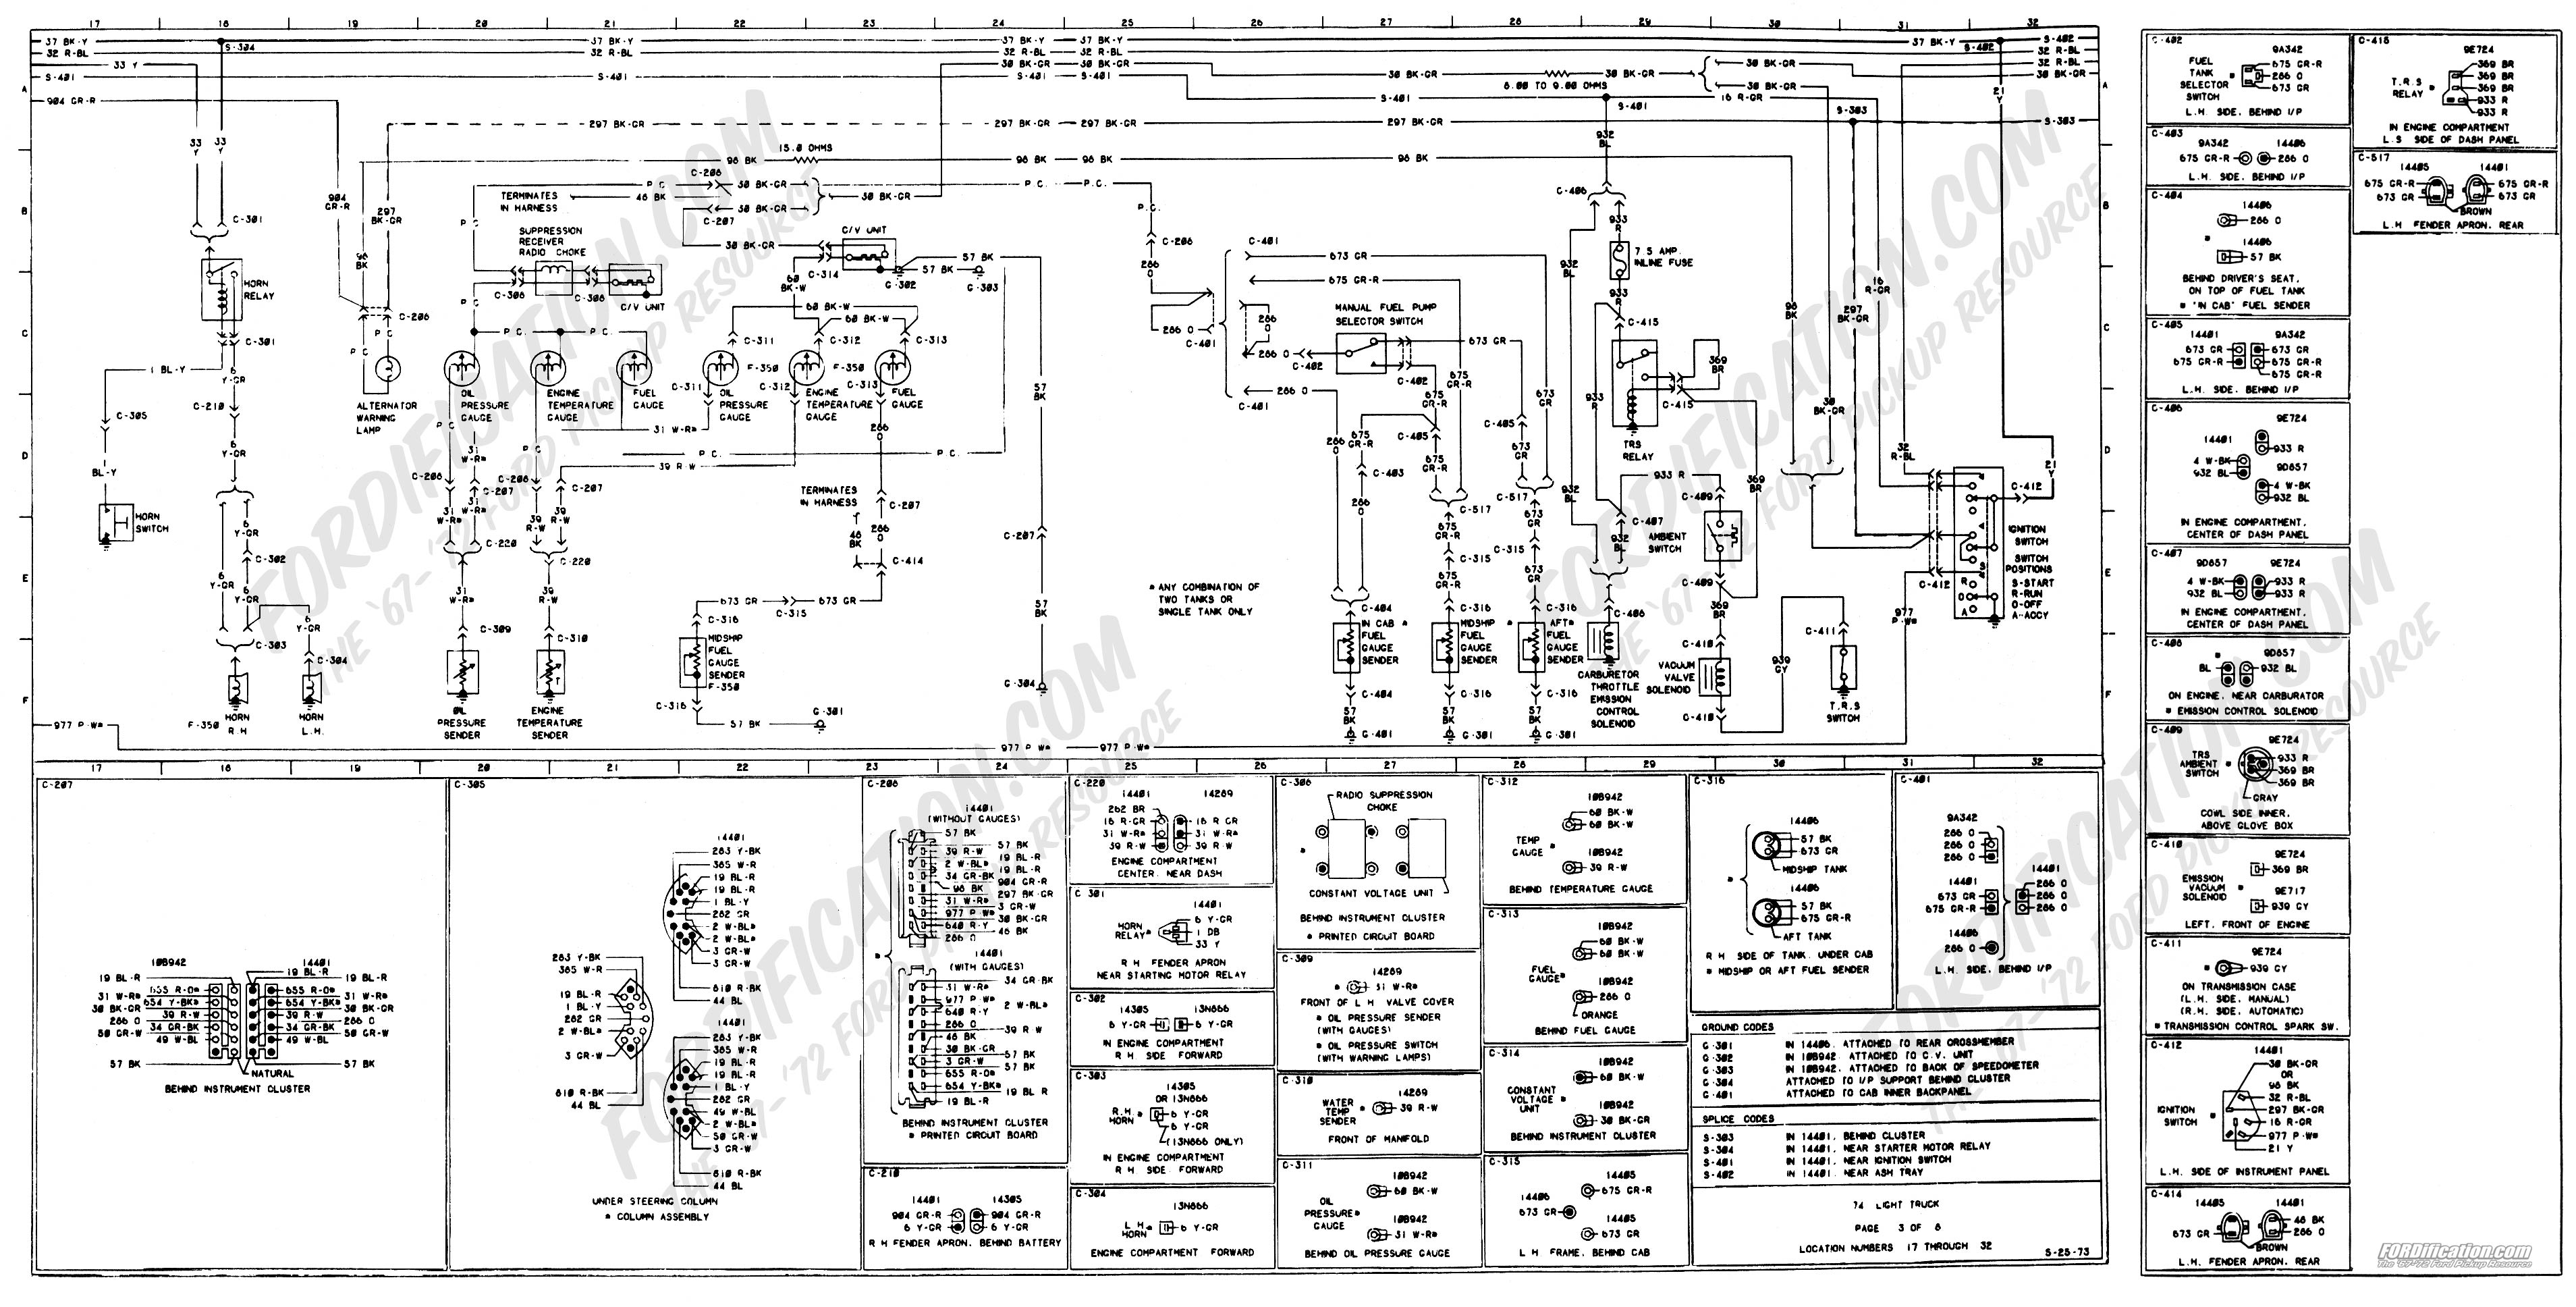 wiring_74master_3of8 1973 1979 ford truck wiring diagrams & schematics fordification net 2006 ford f350 wiring schematic at mifinder.co